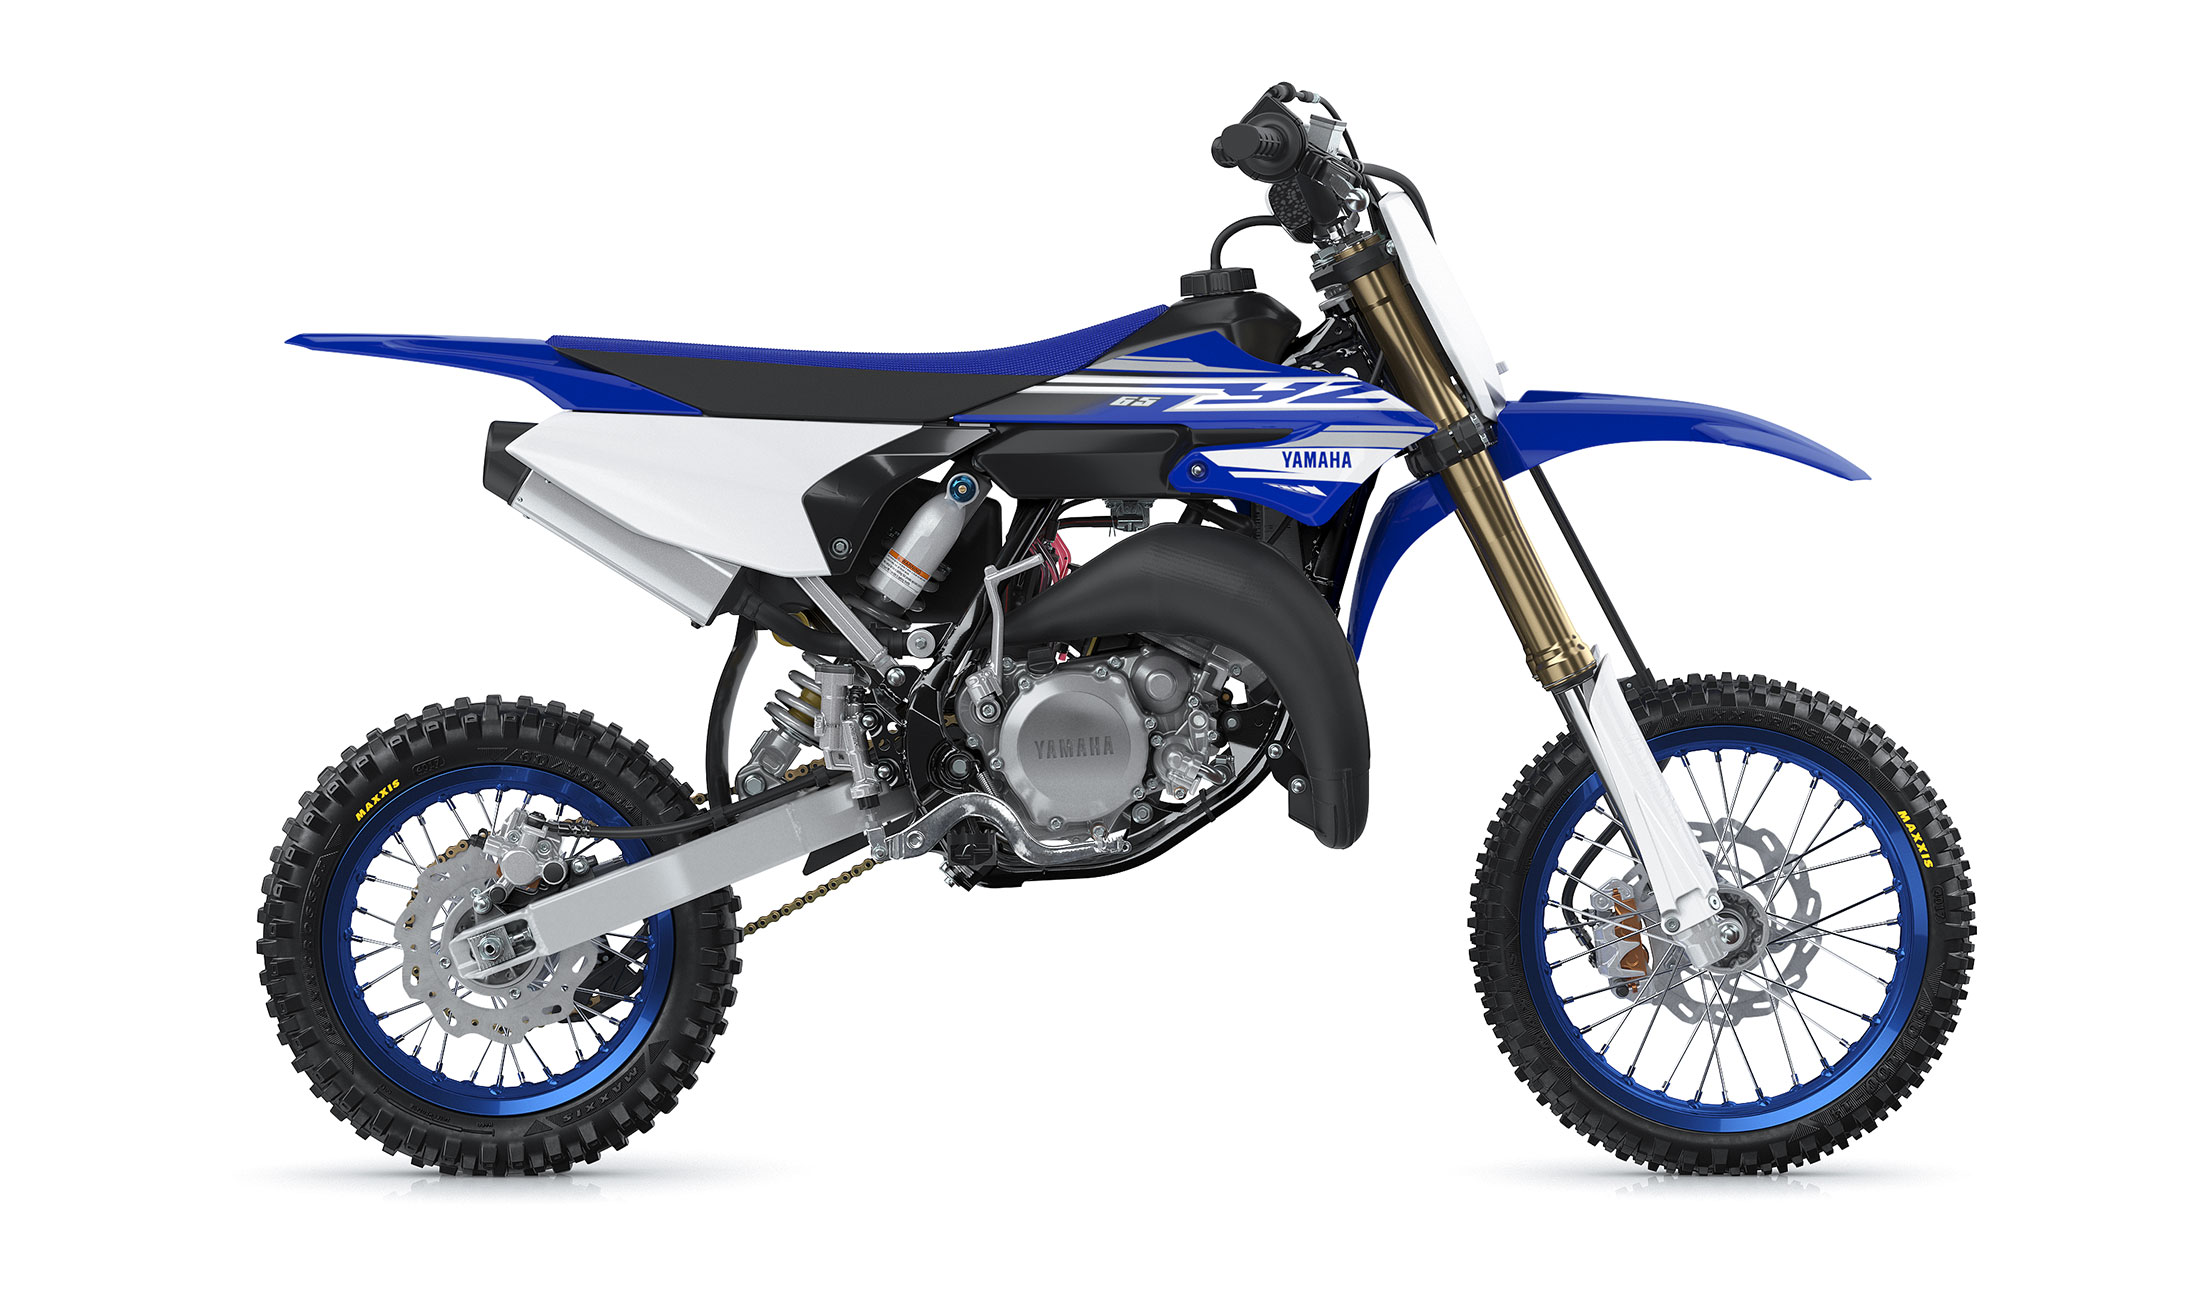 2018 yamaha yz65 motocross motorcycle 360 view for Yamaha parts dealer near me